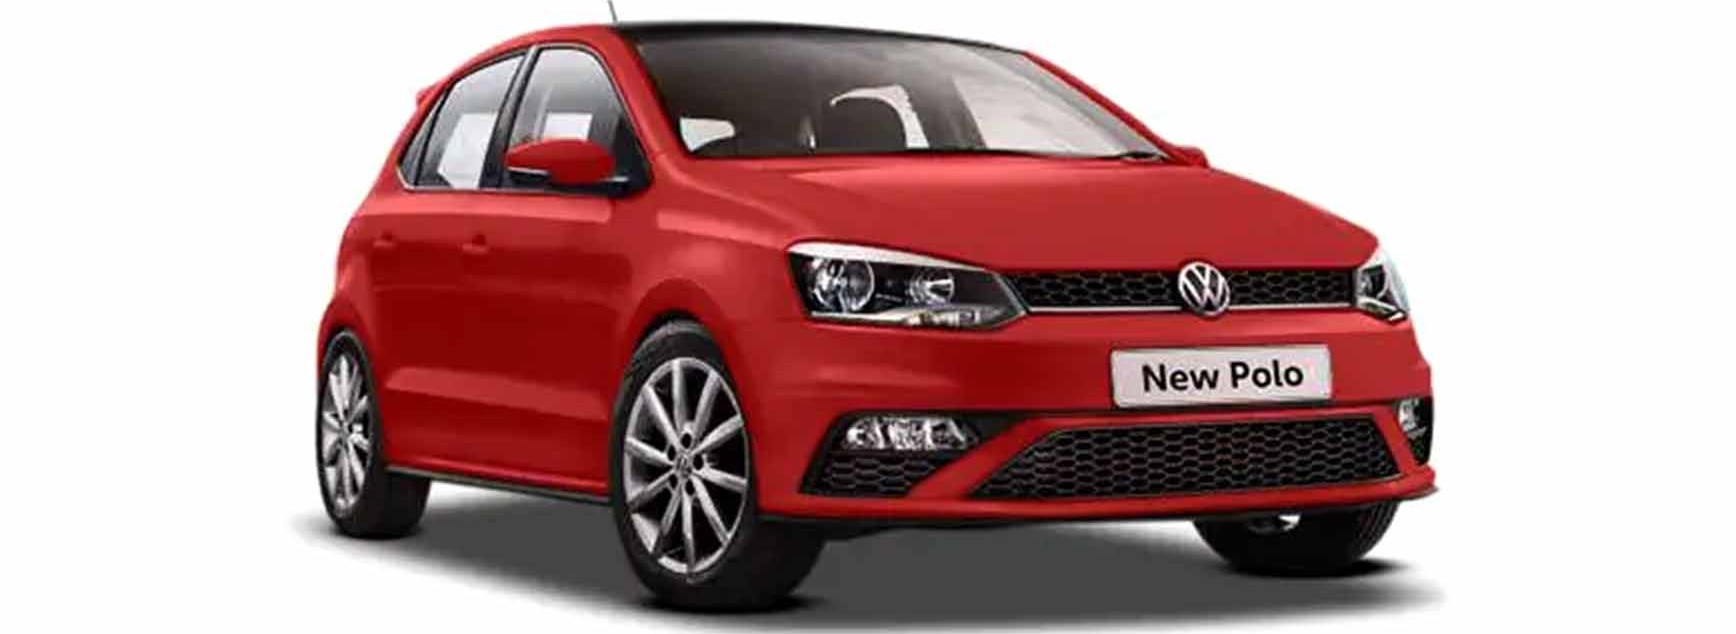 vw-polo-affordable-automatic-car